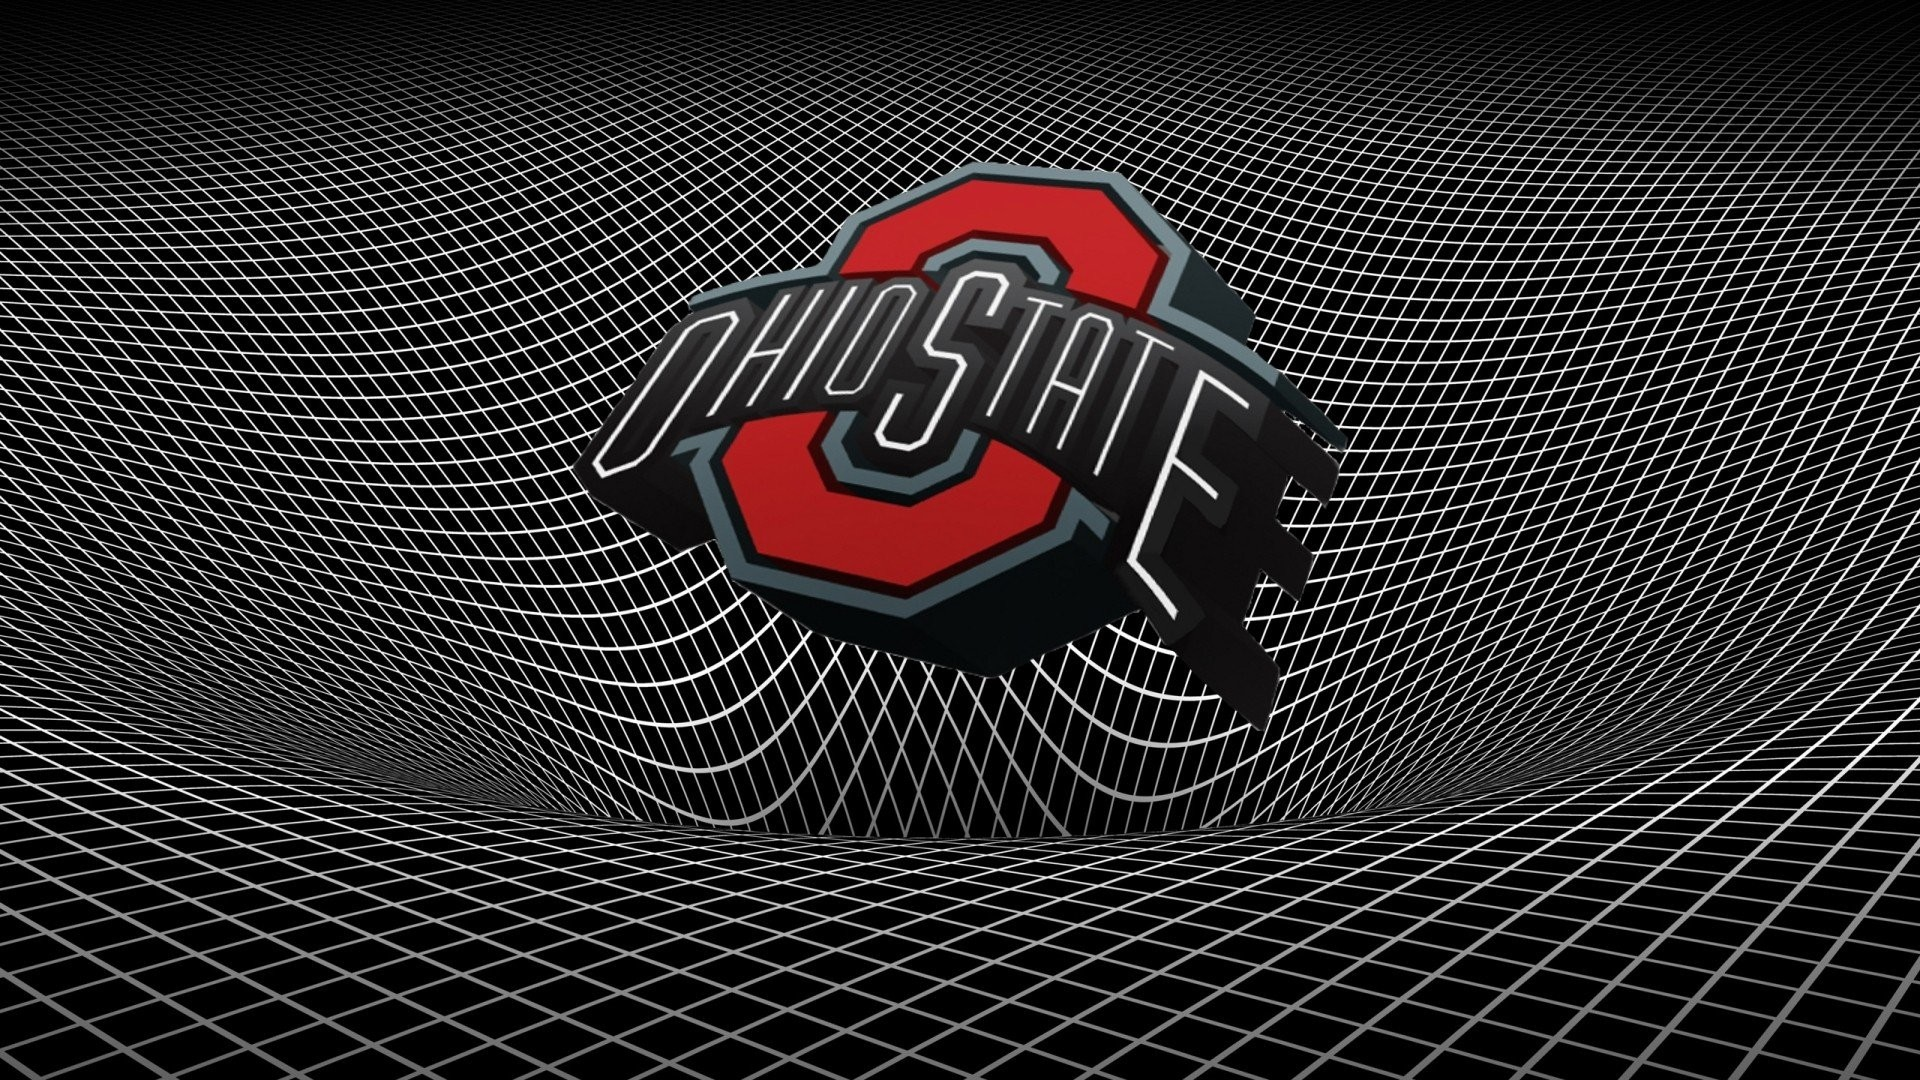 1920x1080 Sports American Football NFL logos Ohio State football teams Football Logos  wallpaper |  | 235917 | WallpaperUP